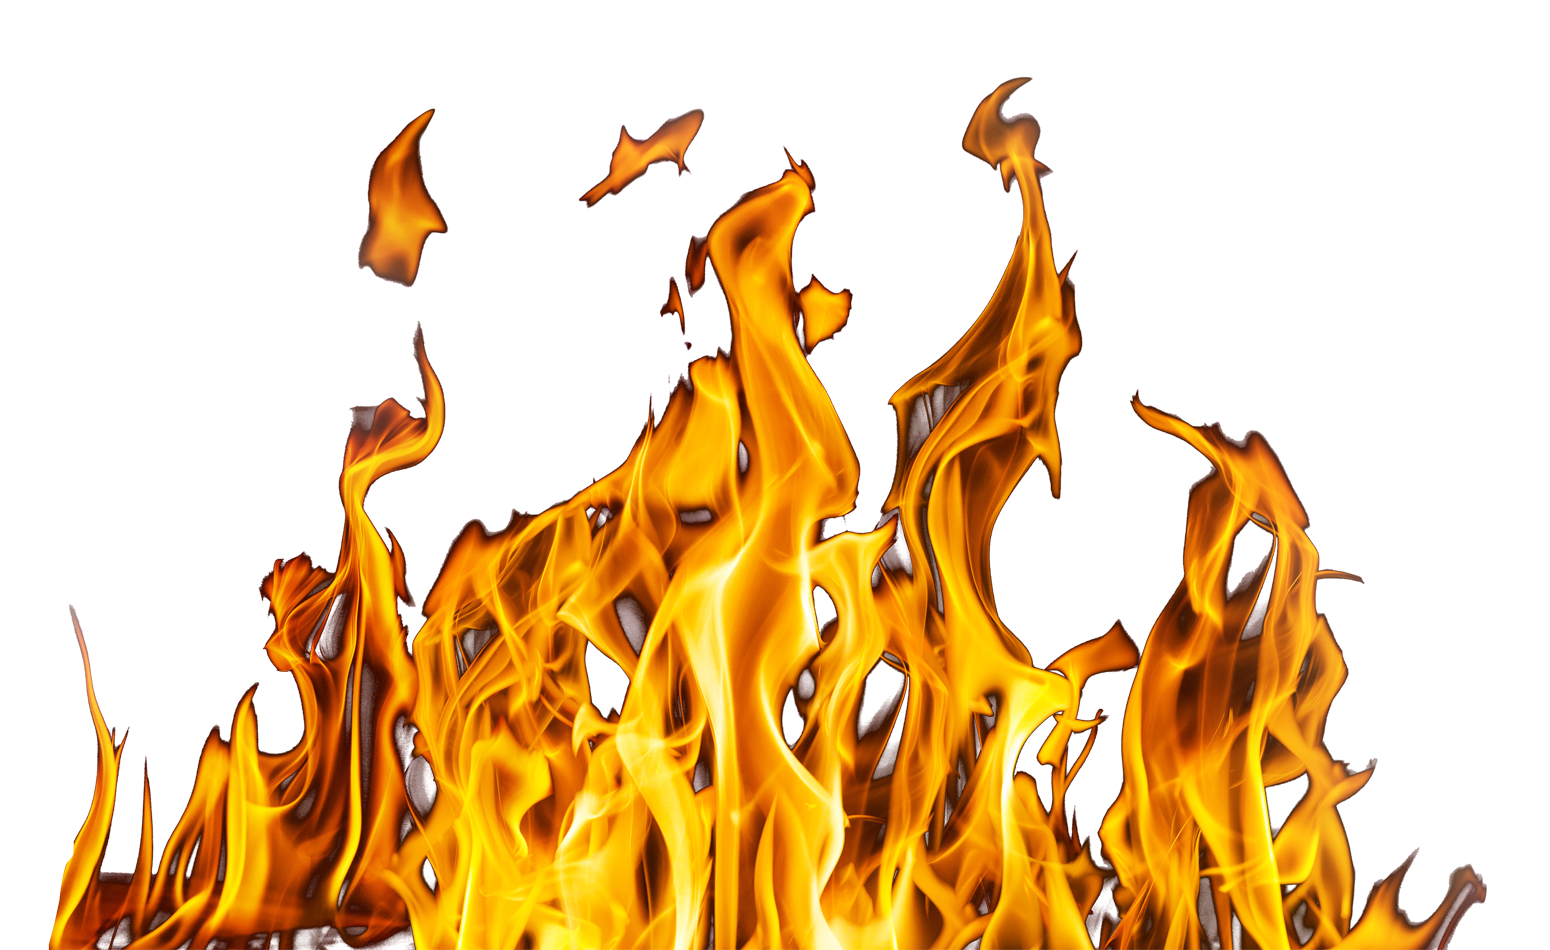 Fire png. Images free icons and